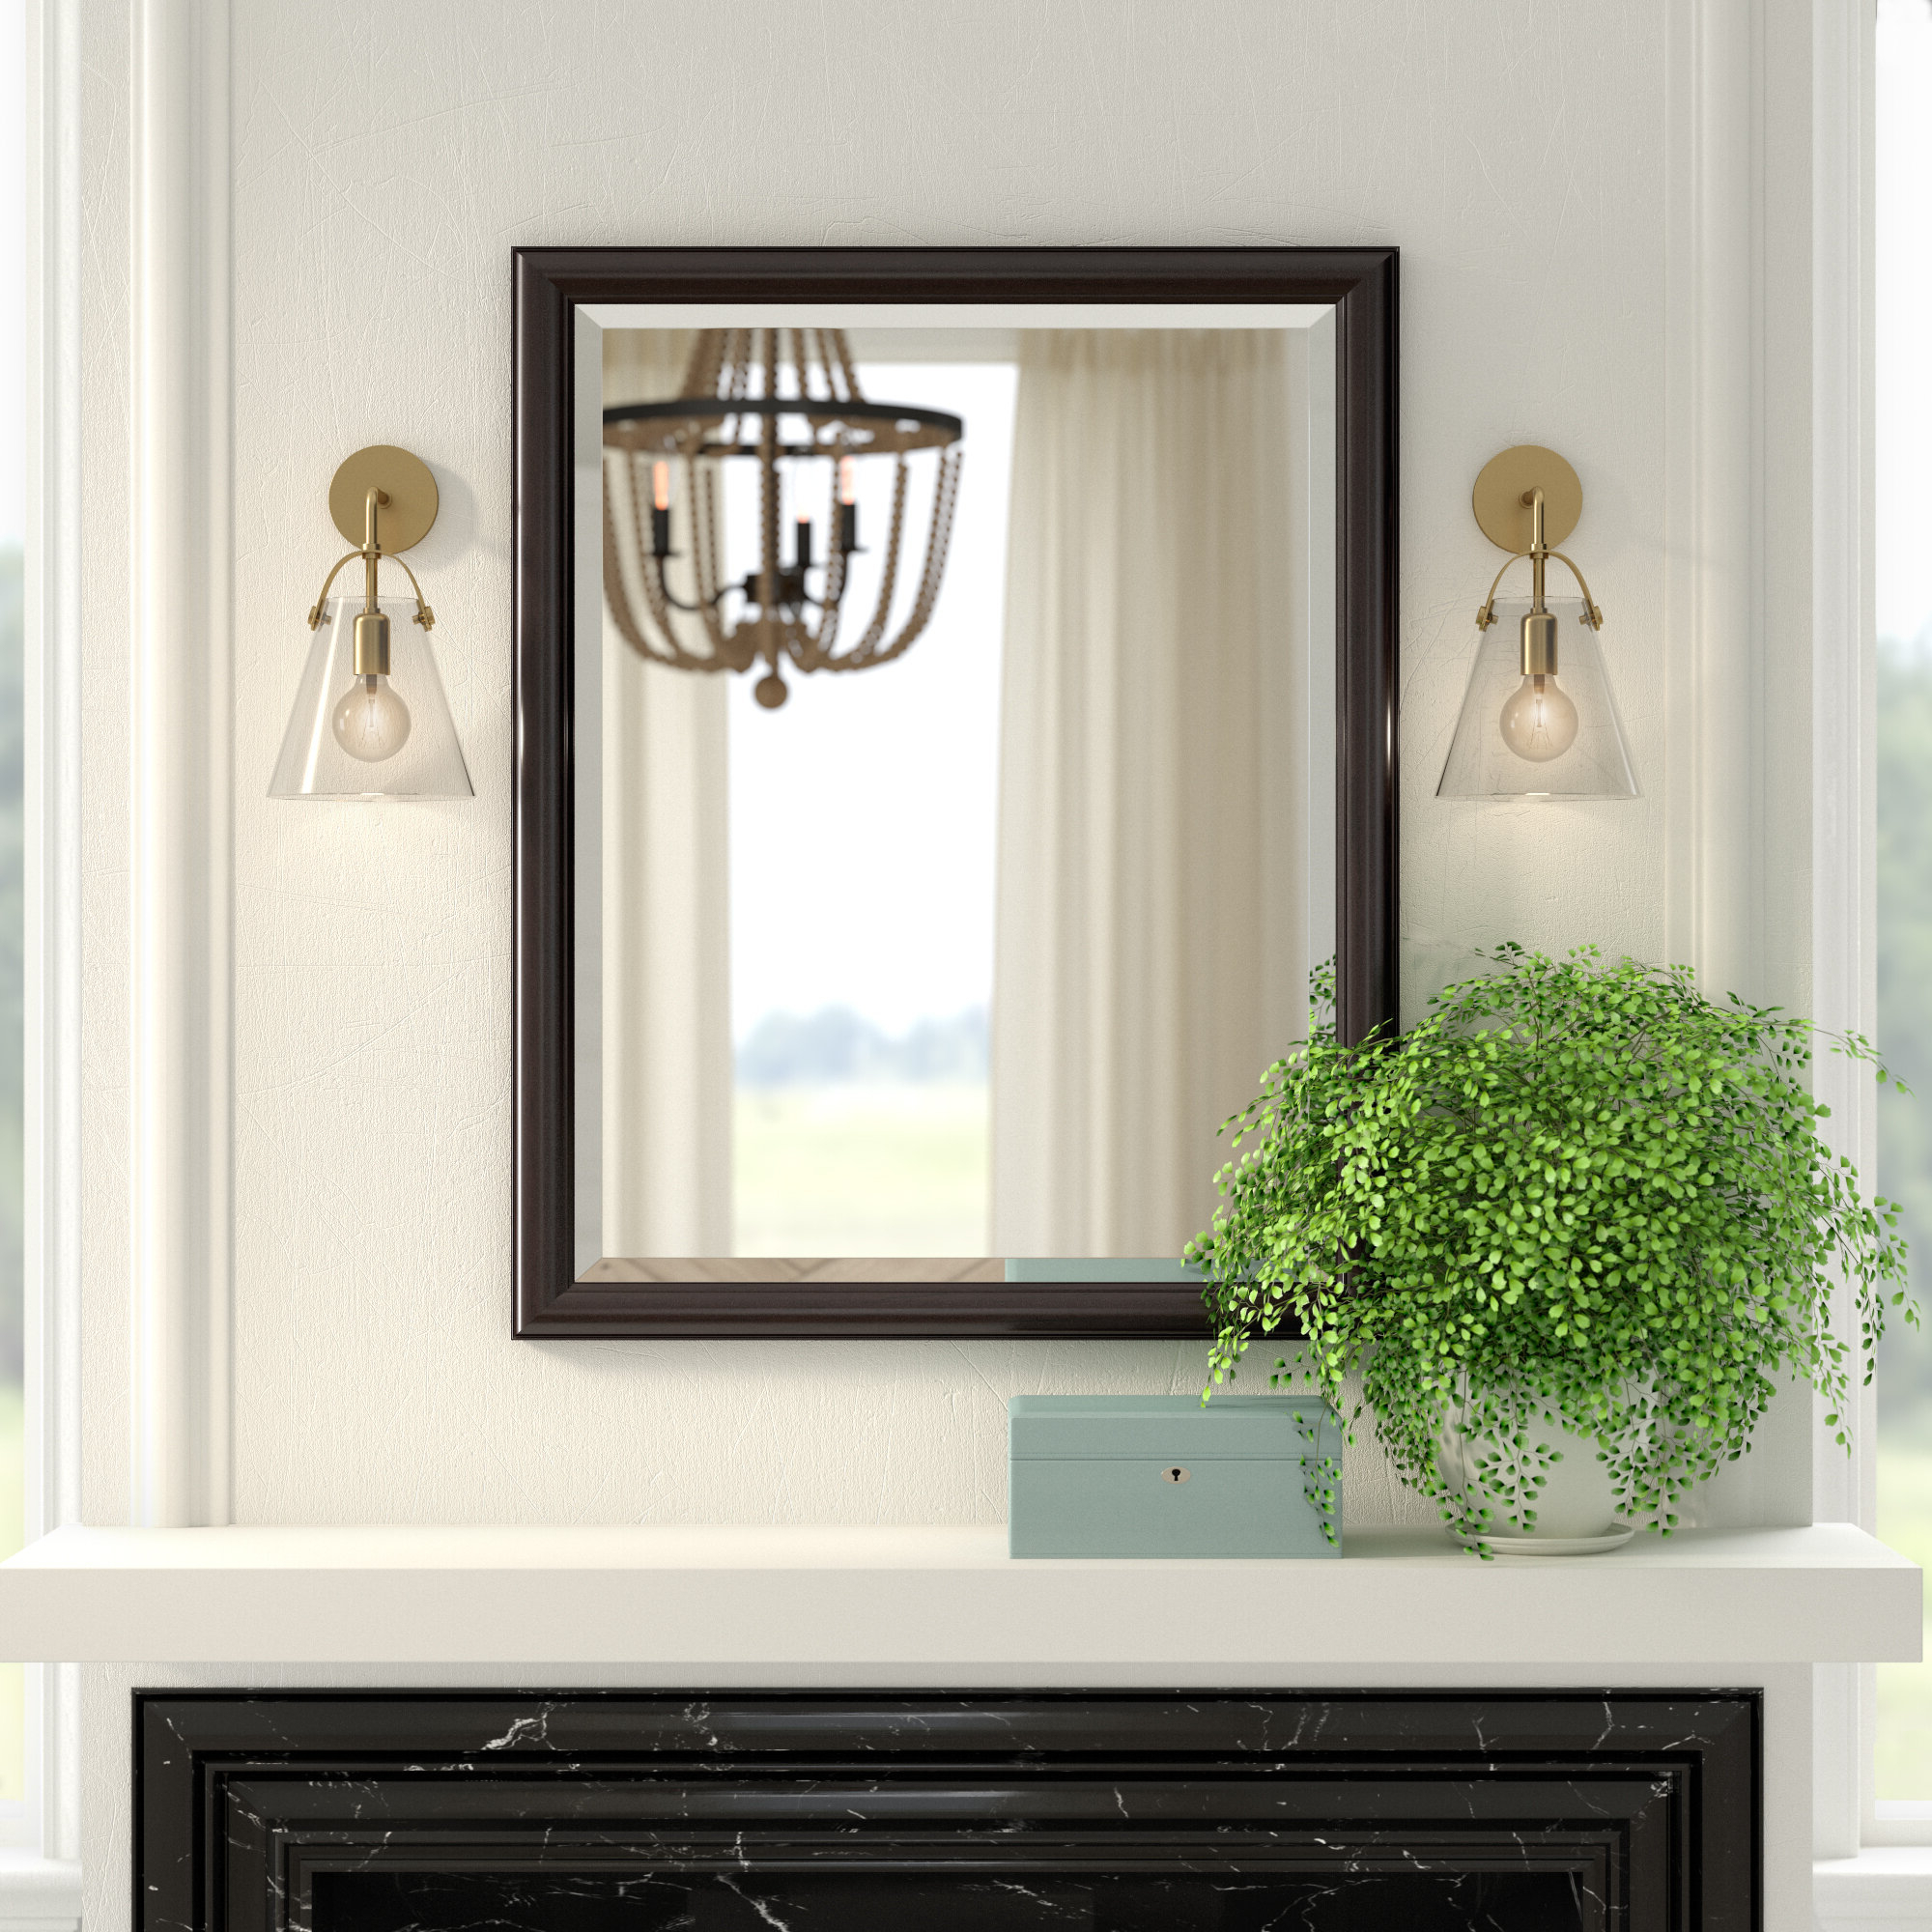 Wall Mirrors For Living Room Intended For Newest Framed Beveled Wall Mirror (View 11 of 20)